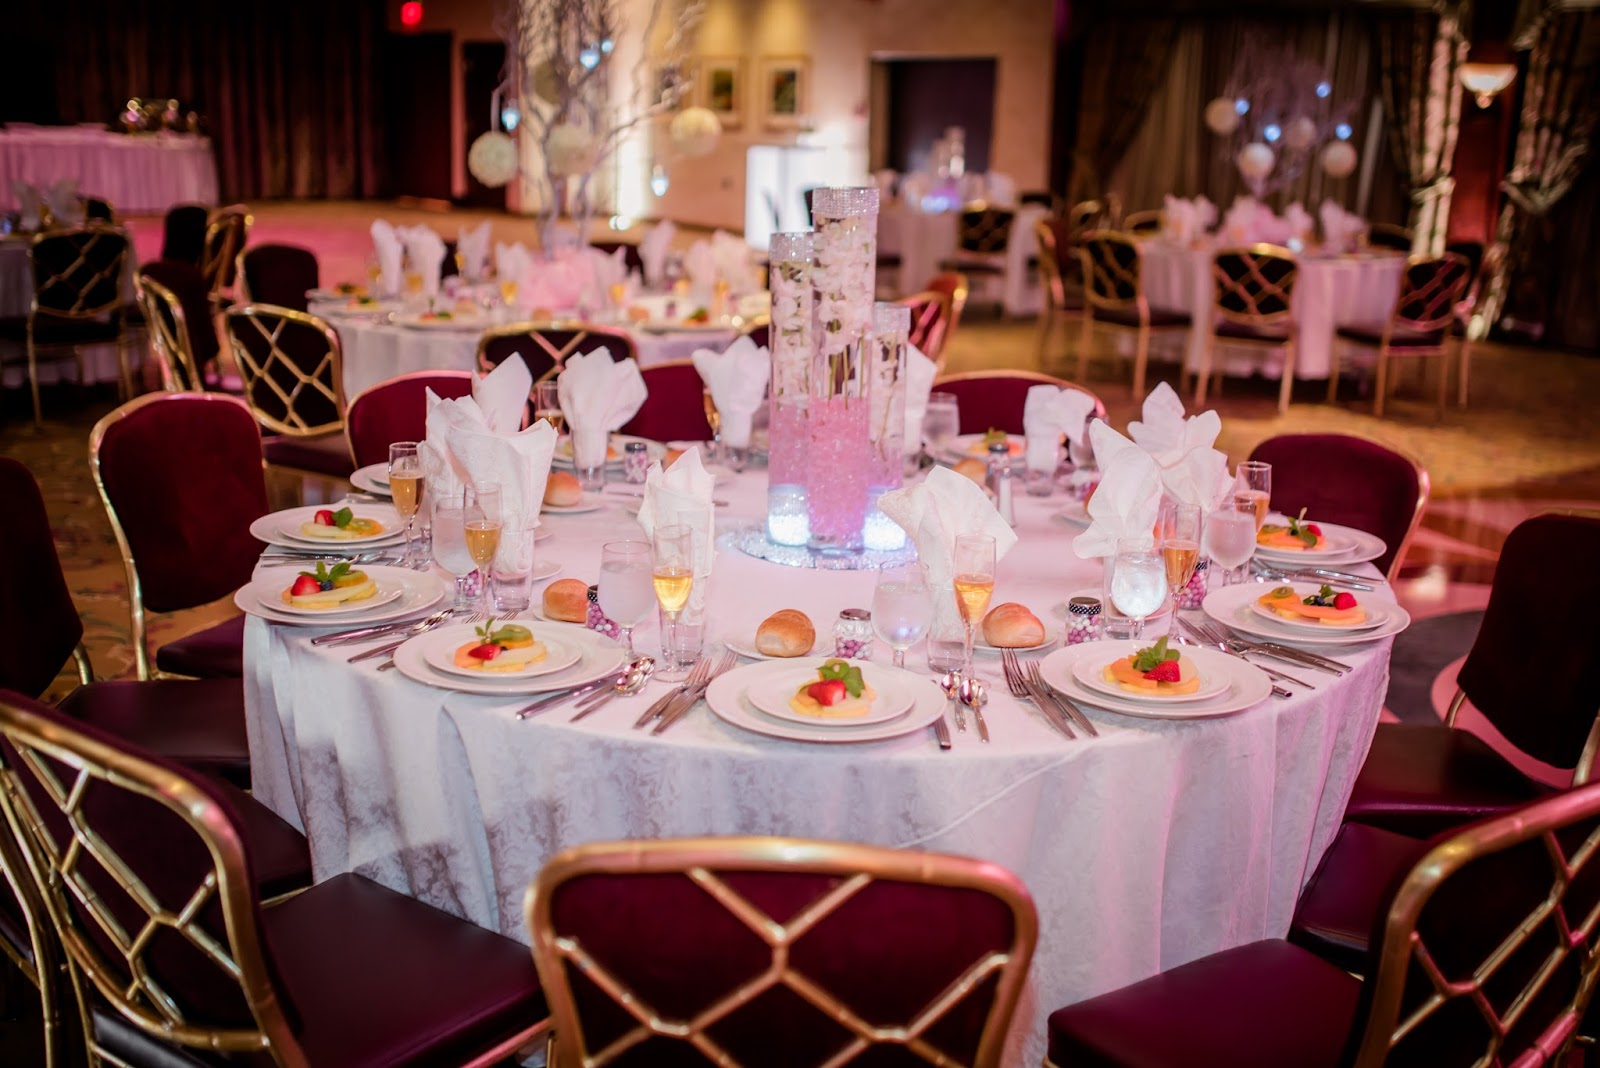 How to Decorate Your Wedding Tables - Fine Art Wedding Photographer